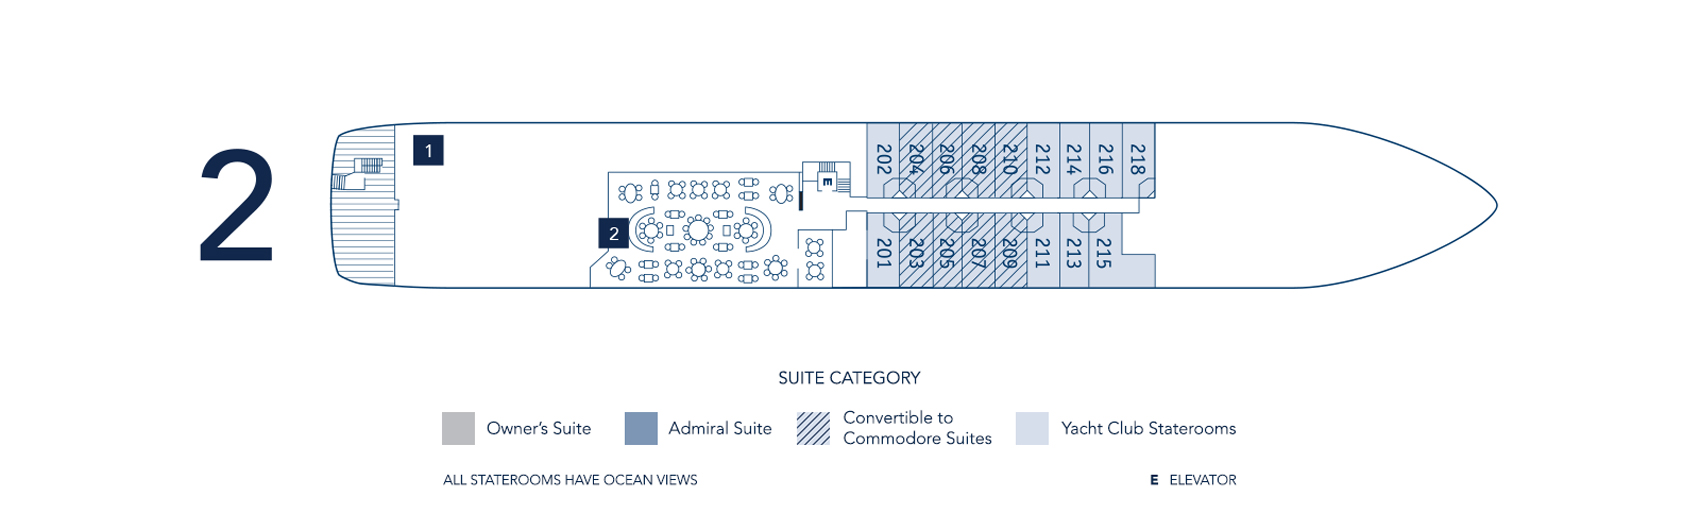 Seadream S Luxury Yacht Deck Plans